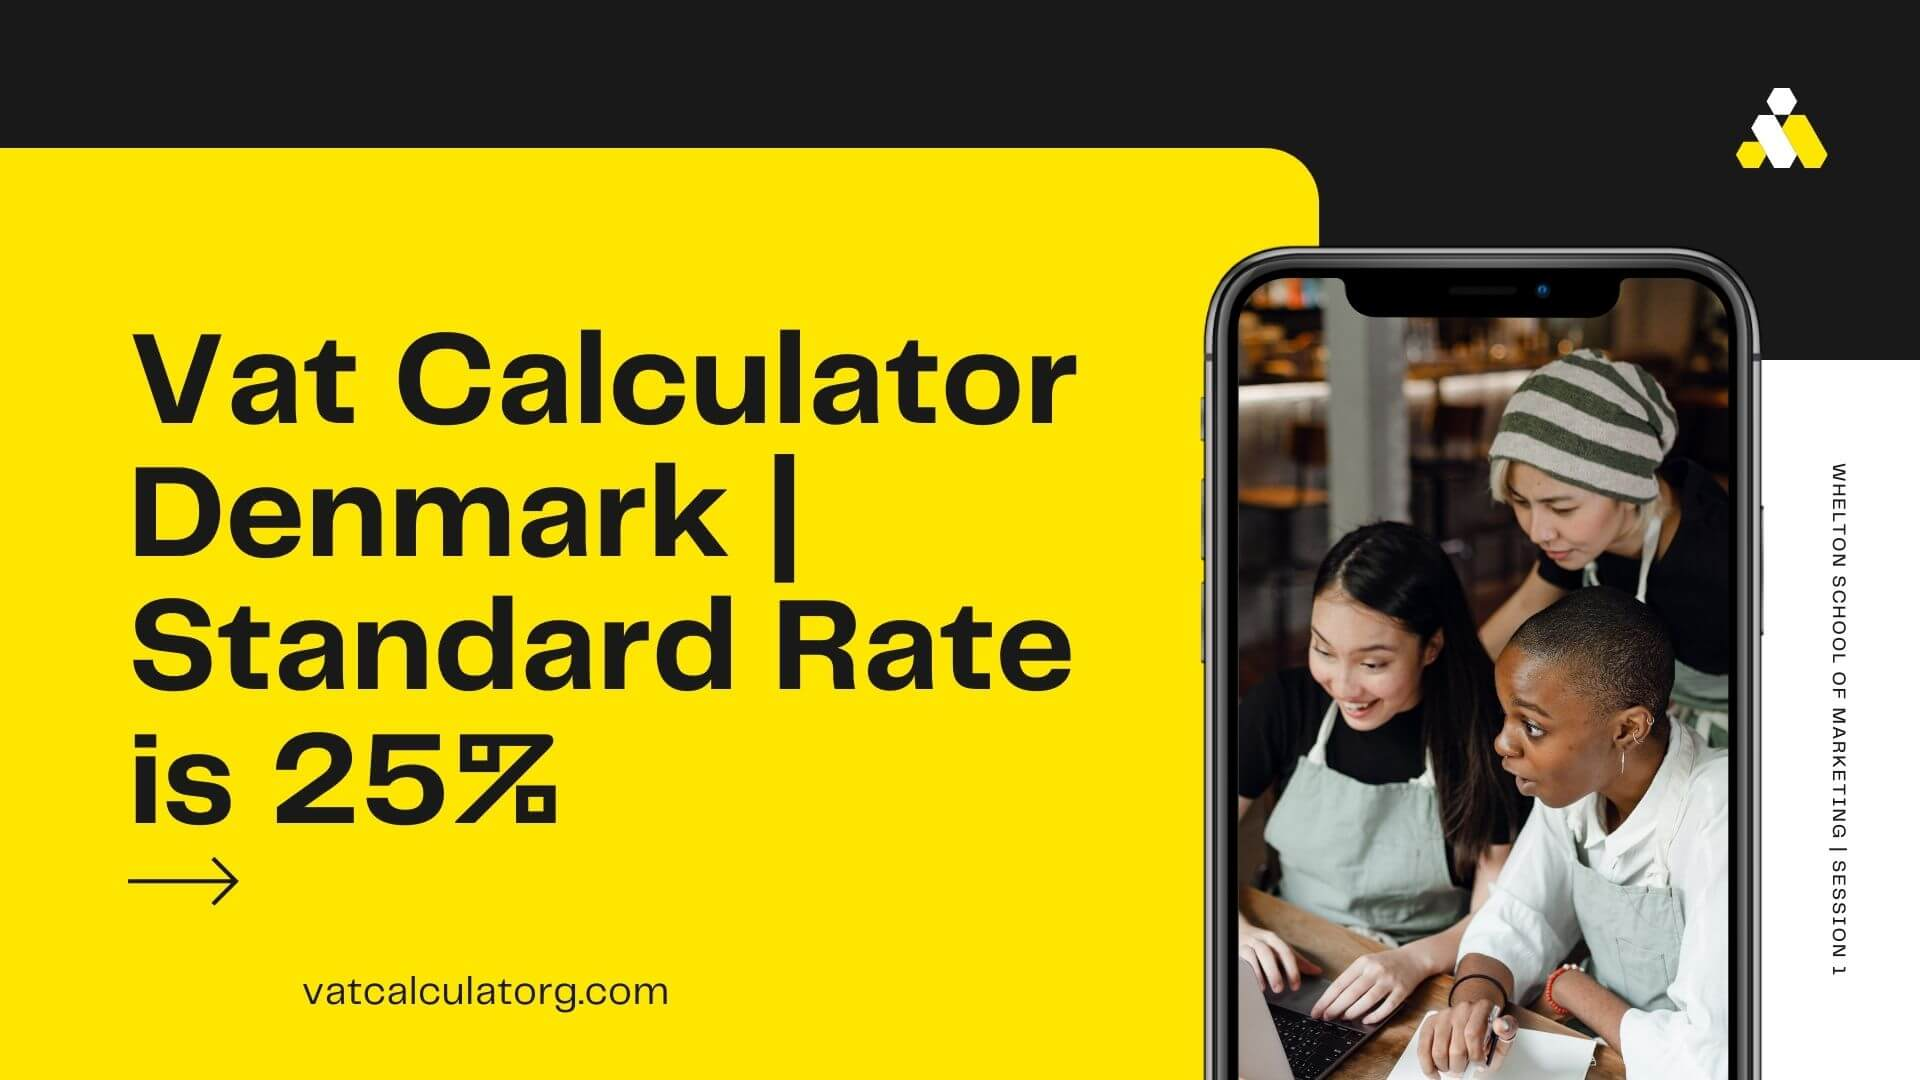 vat calculator denmark